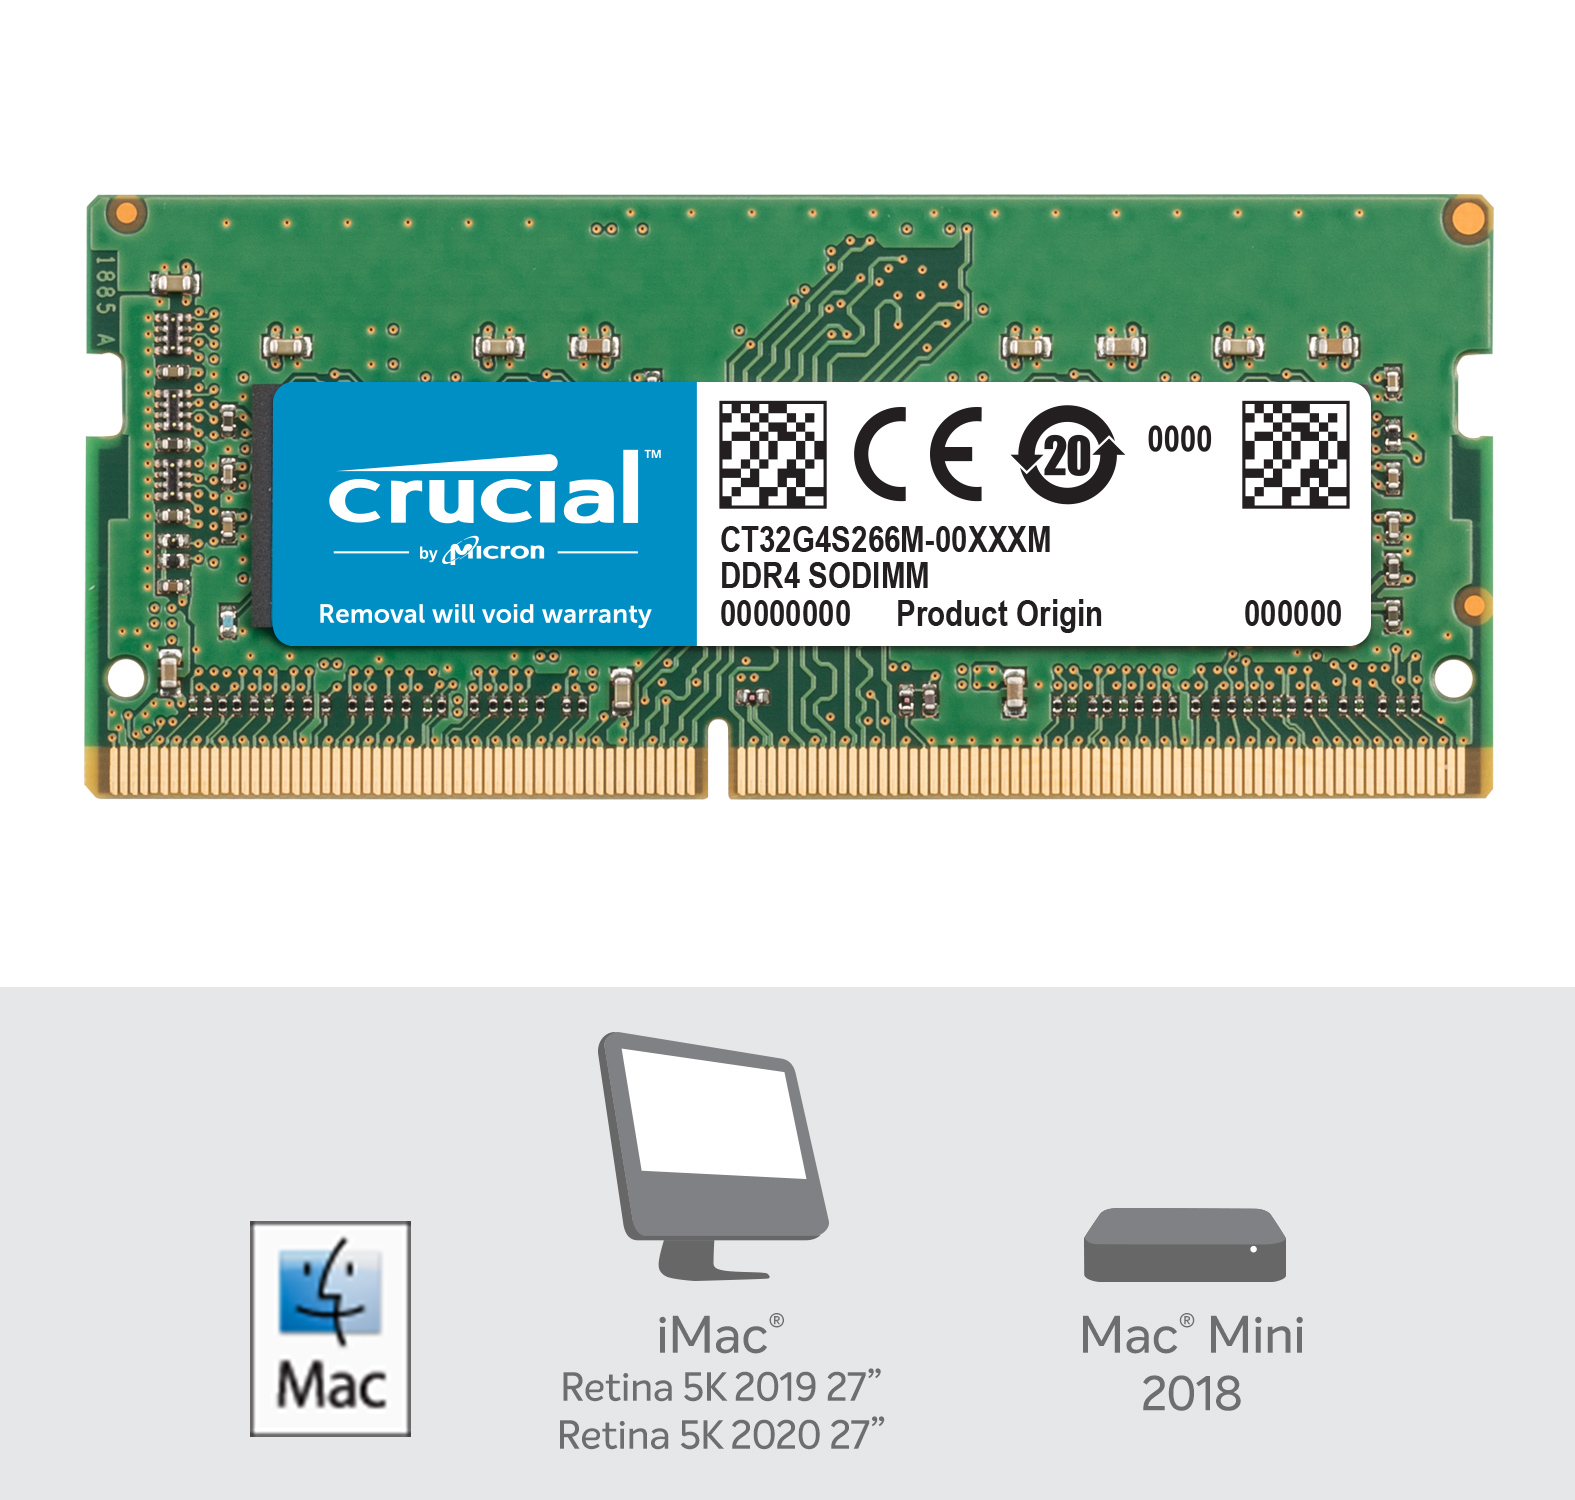 Crucial 32GB DDR4-2666 SODIMM Memory for Mac- view 2